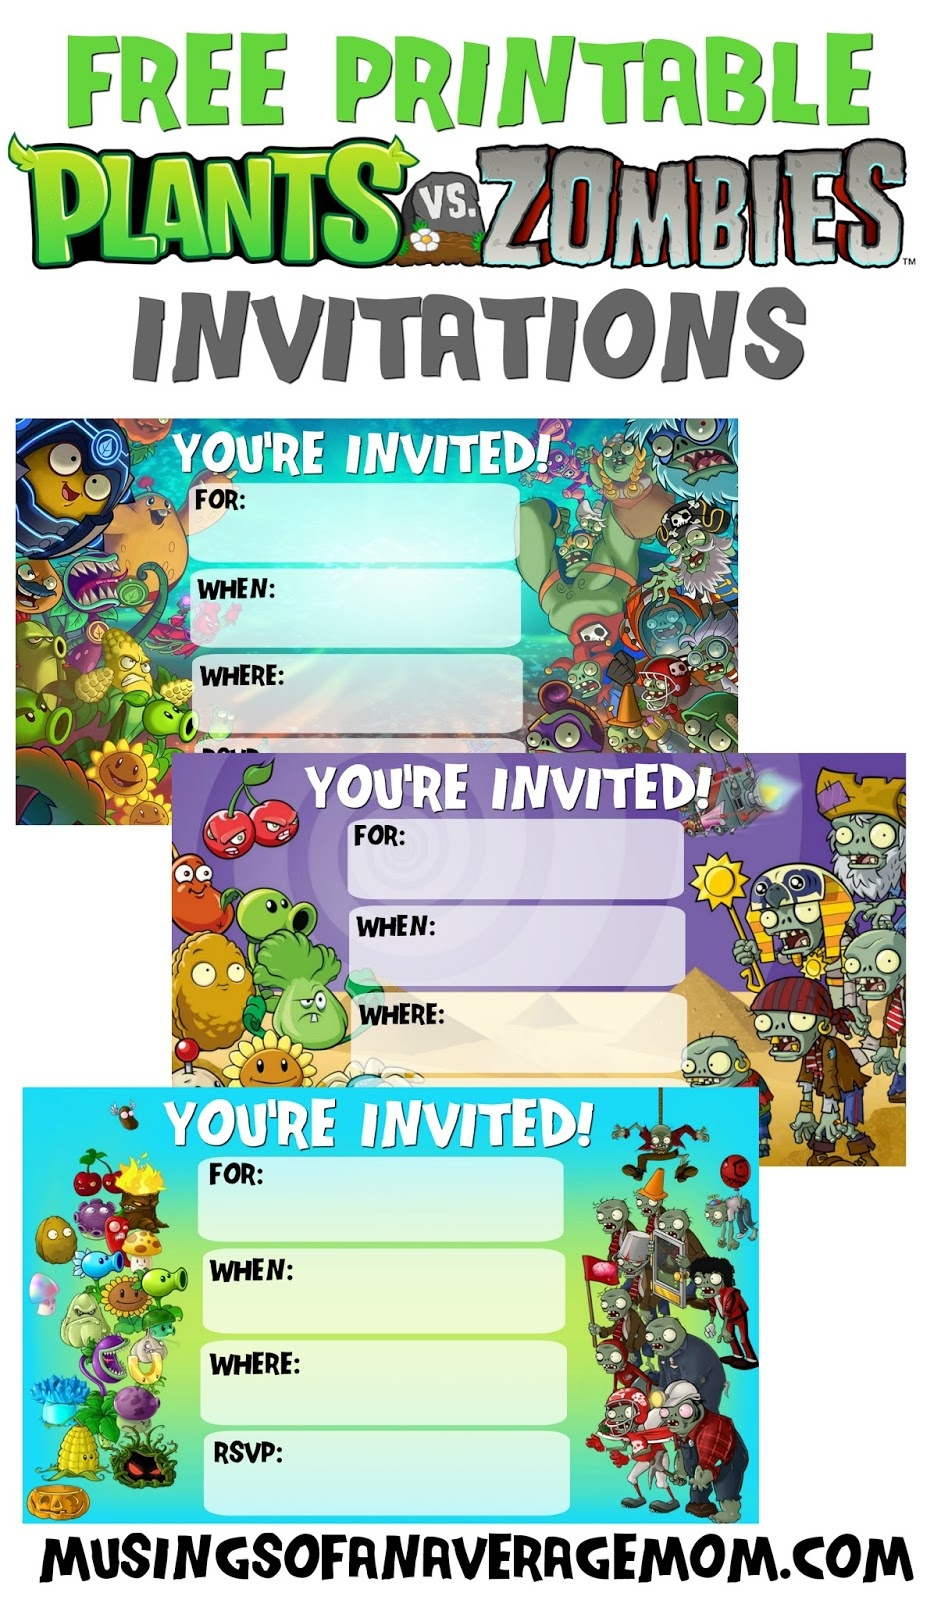 Musings Of An Average Mom: Plants Vs. Zombies Invitations - Plants Vs Zombies Free Printable Invitations